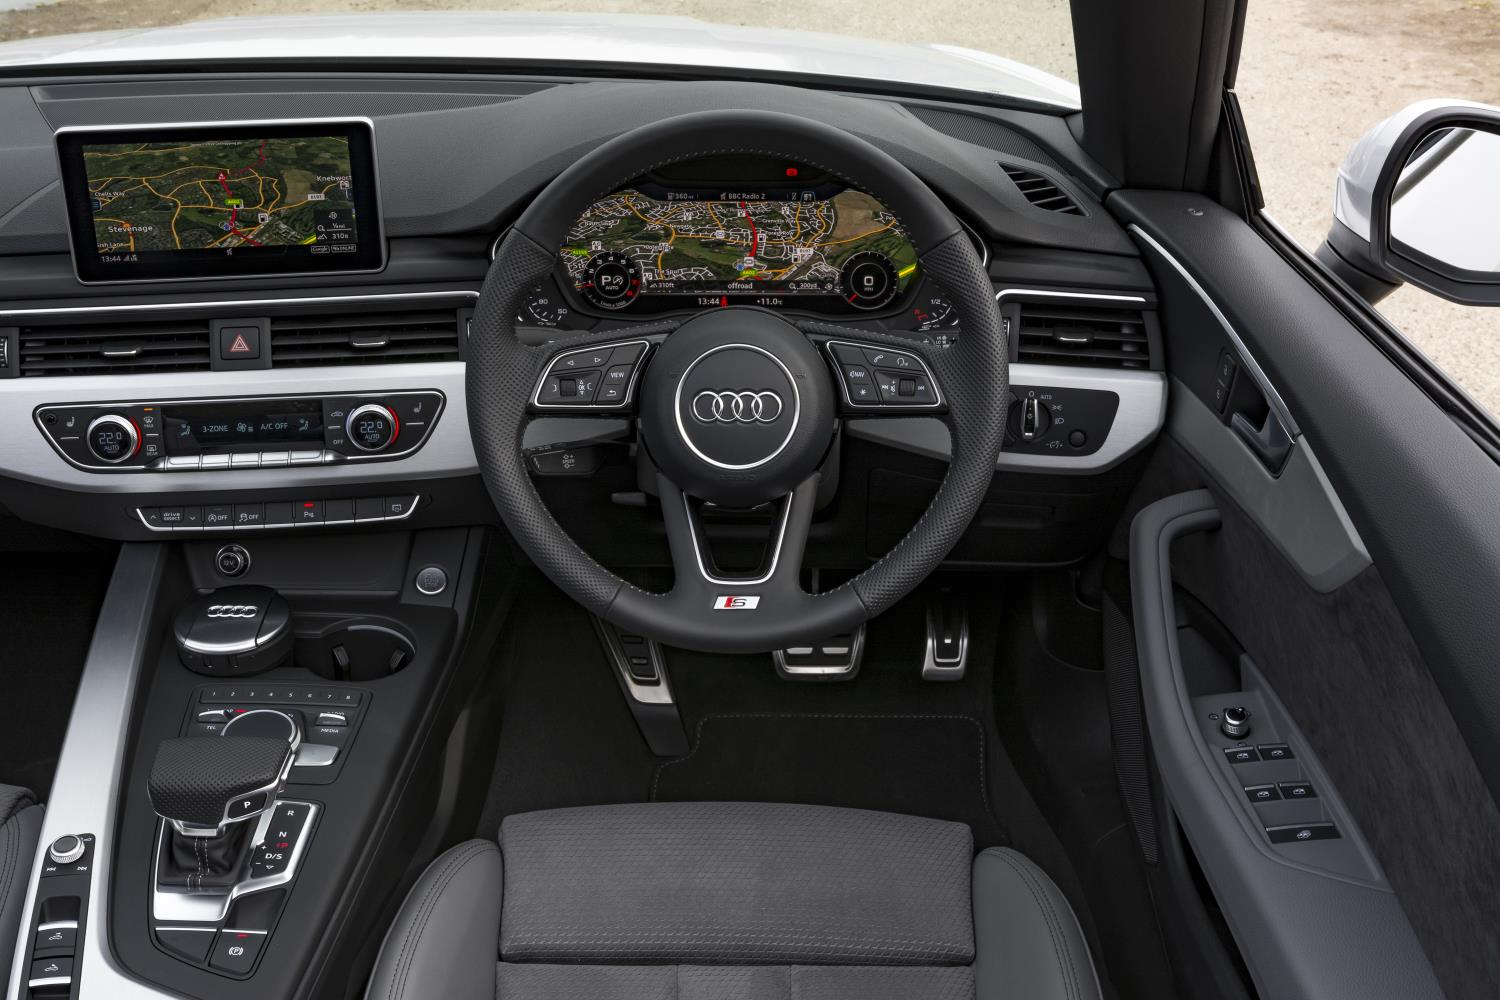 Drivers side interior of AUdi A5 Cabriolet